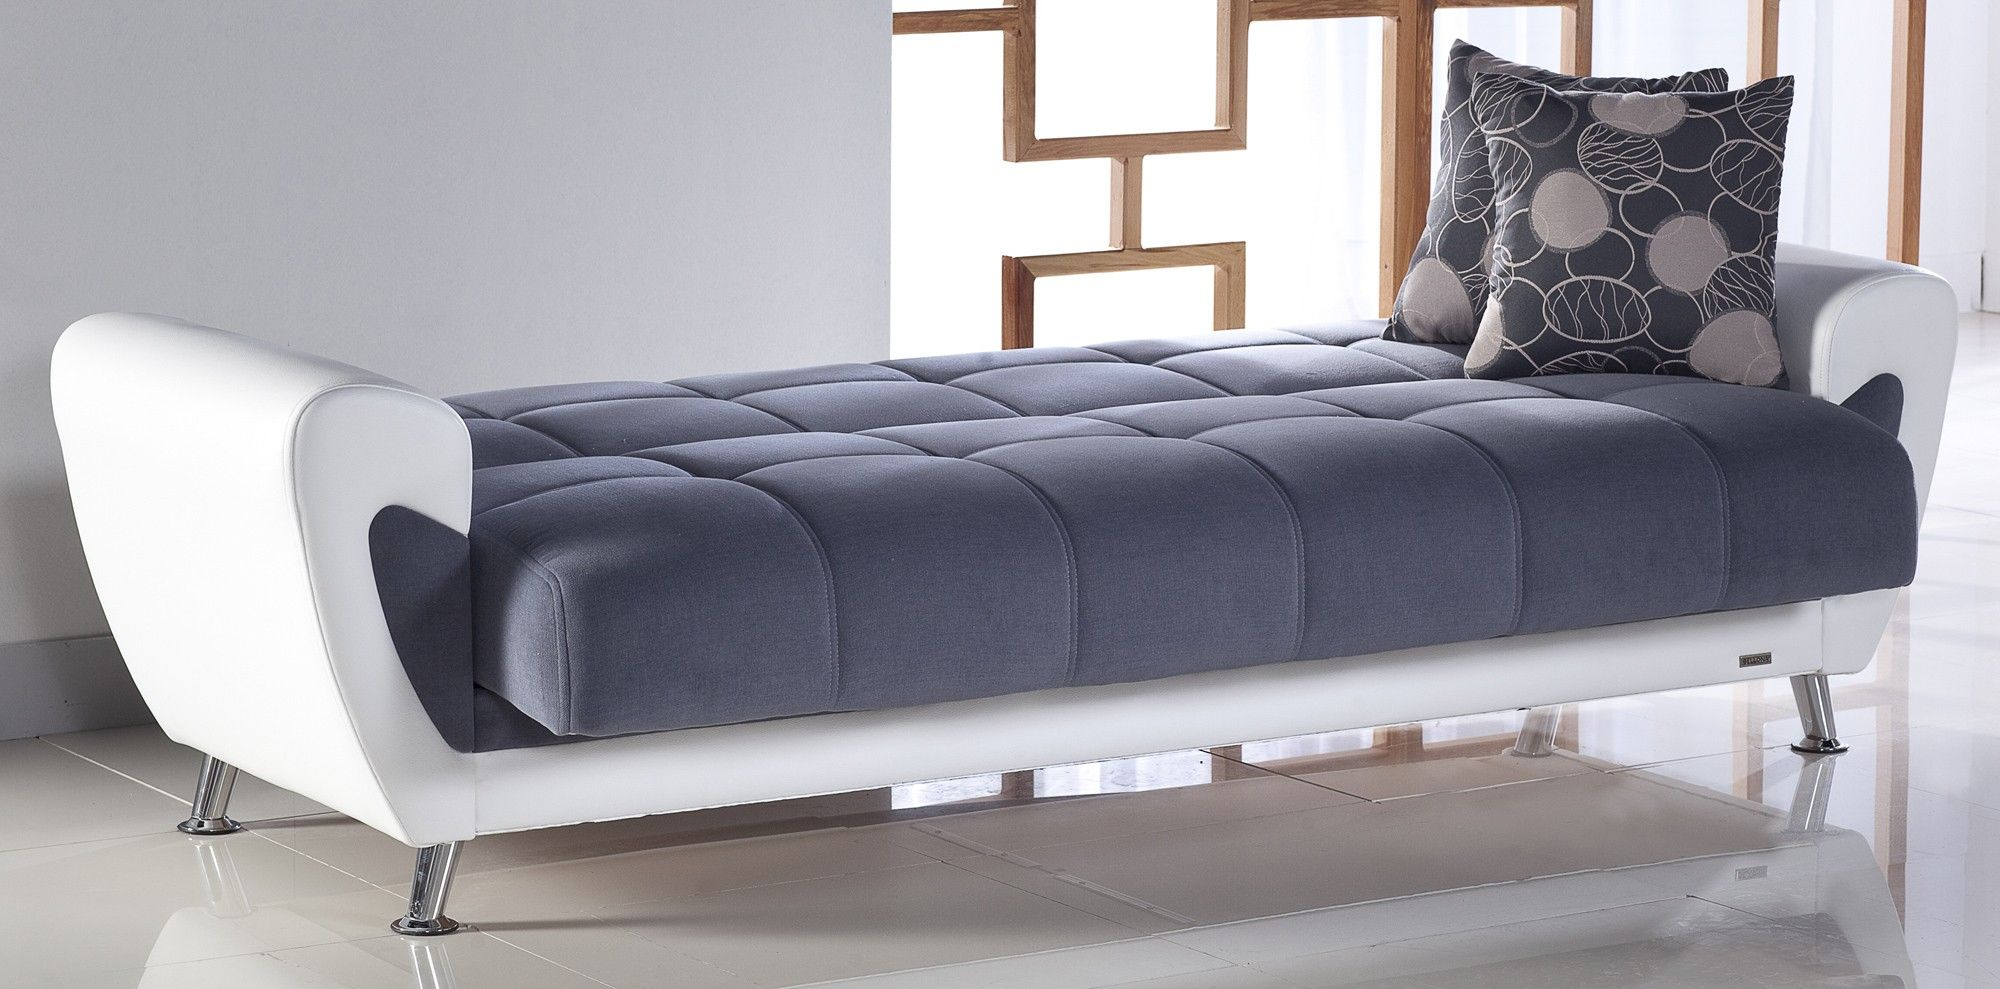 Cool Living Area Design Presented With Light Grey Tufted Modern ... Modern  CouchBedroom ...